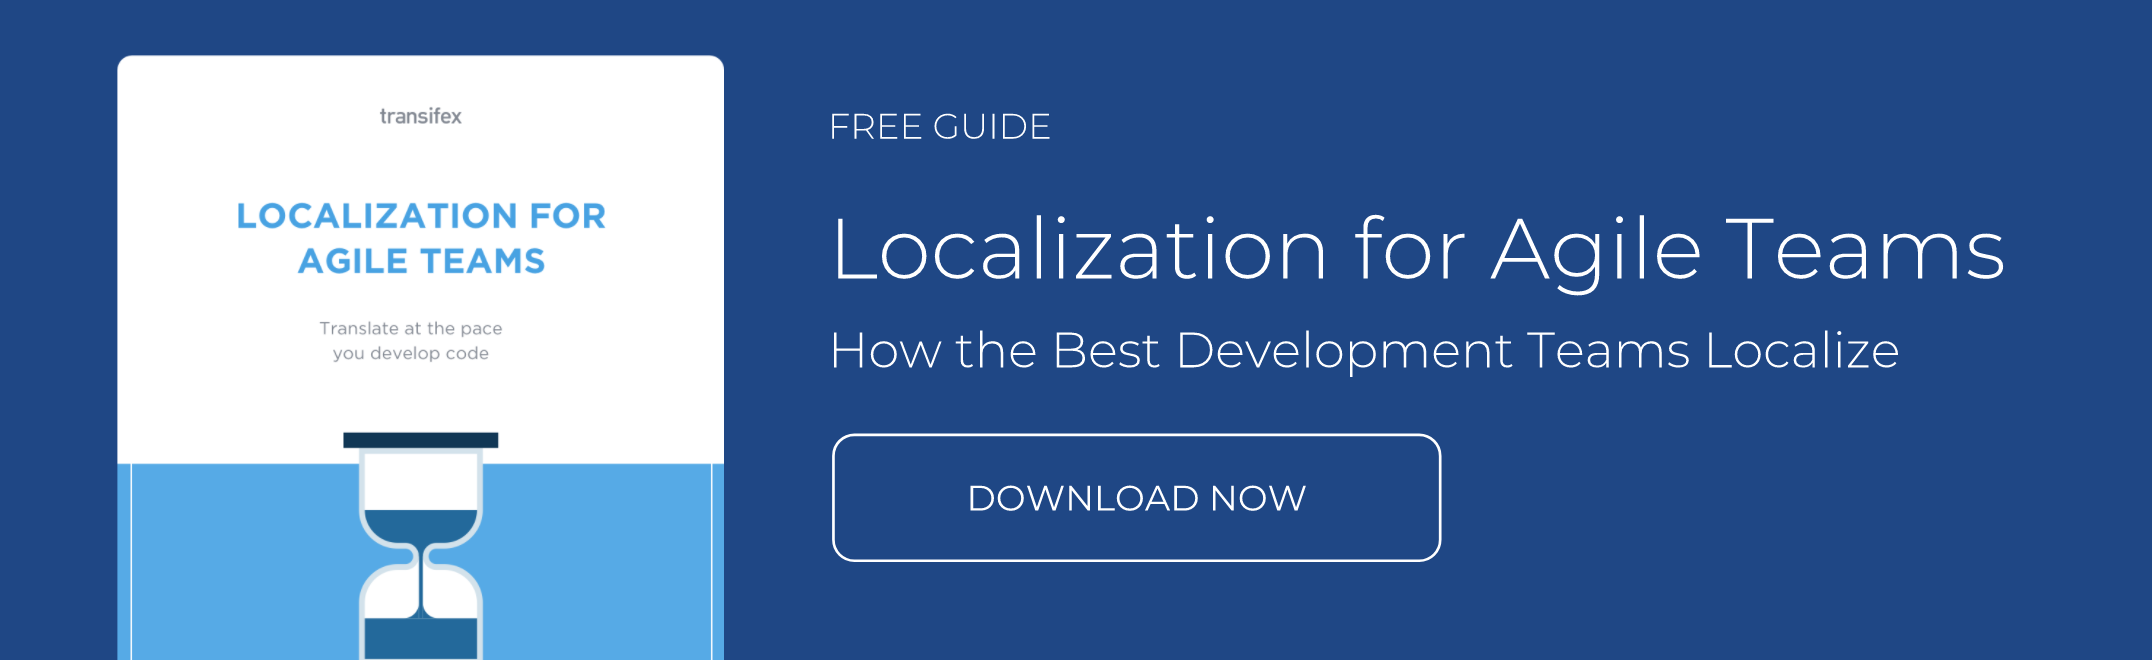 localization-for-agile-teams-guide-download